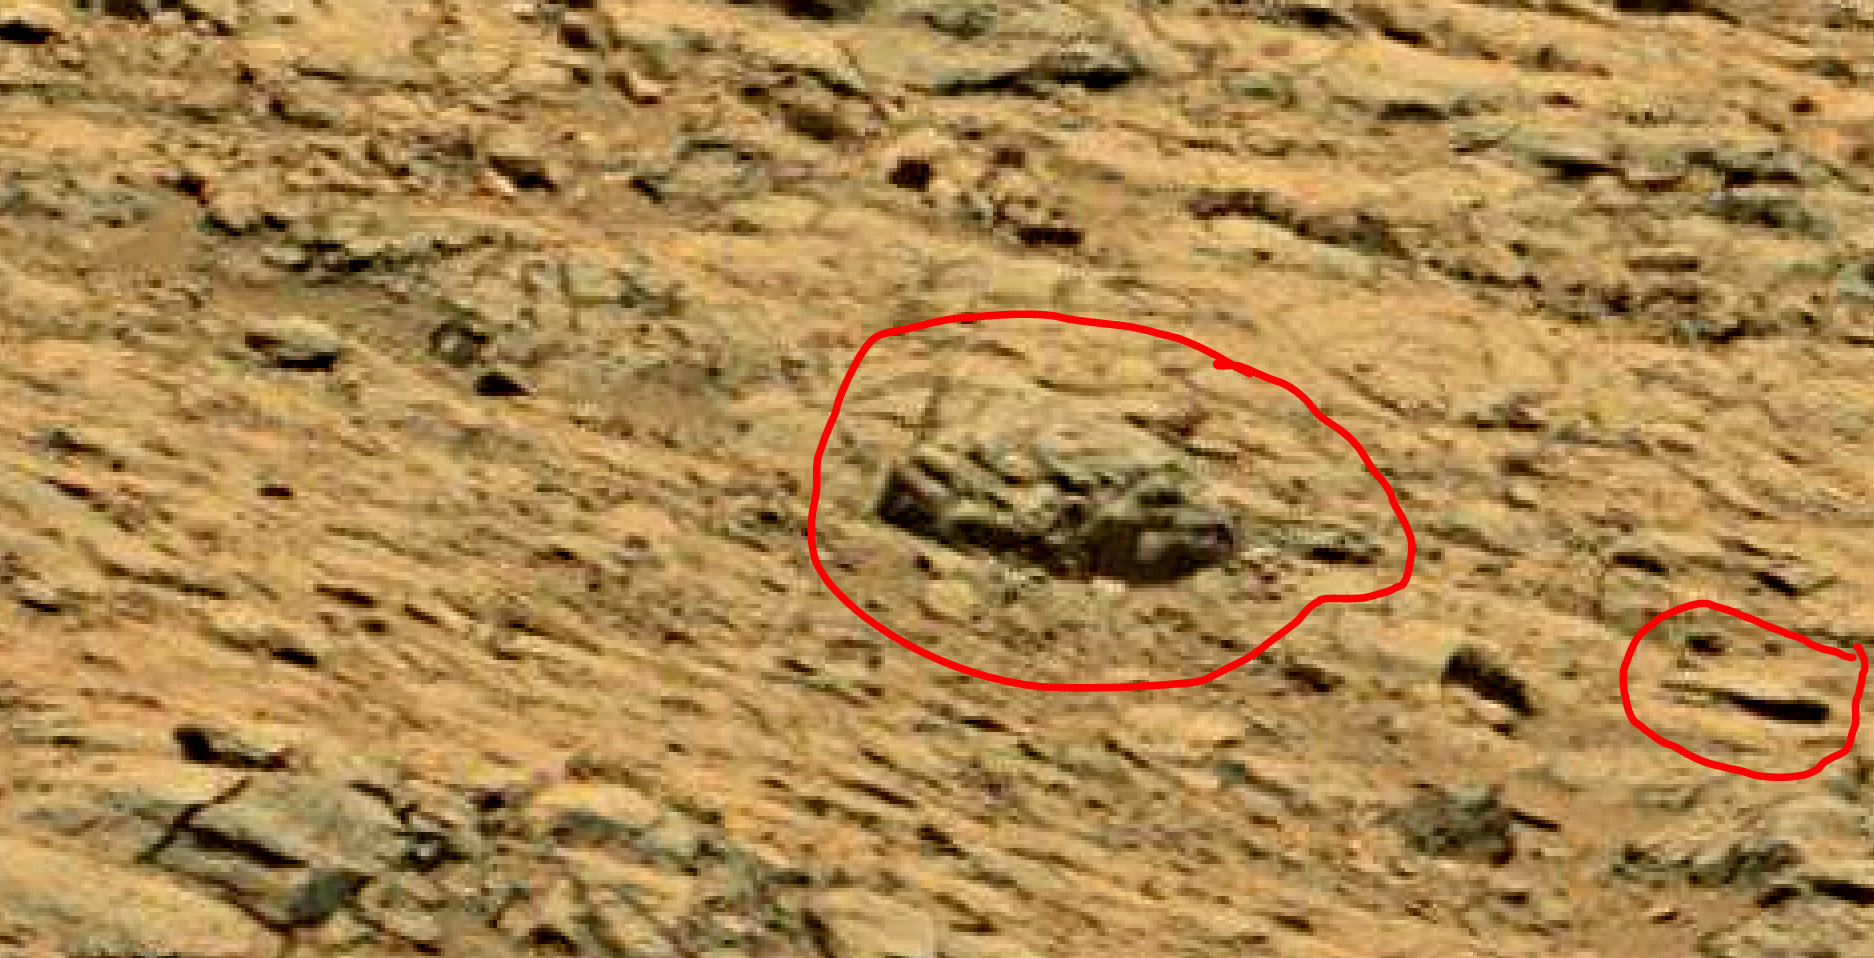 mars sol 1353 anomaly-artifacts 66 was life on mars